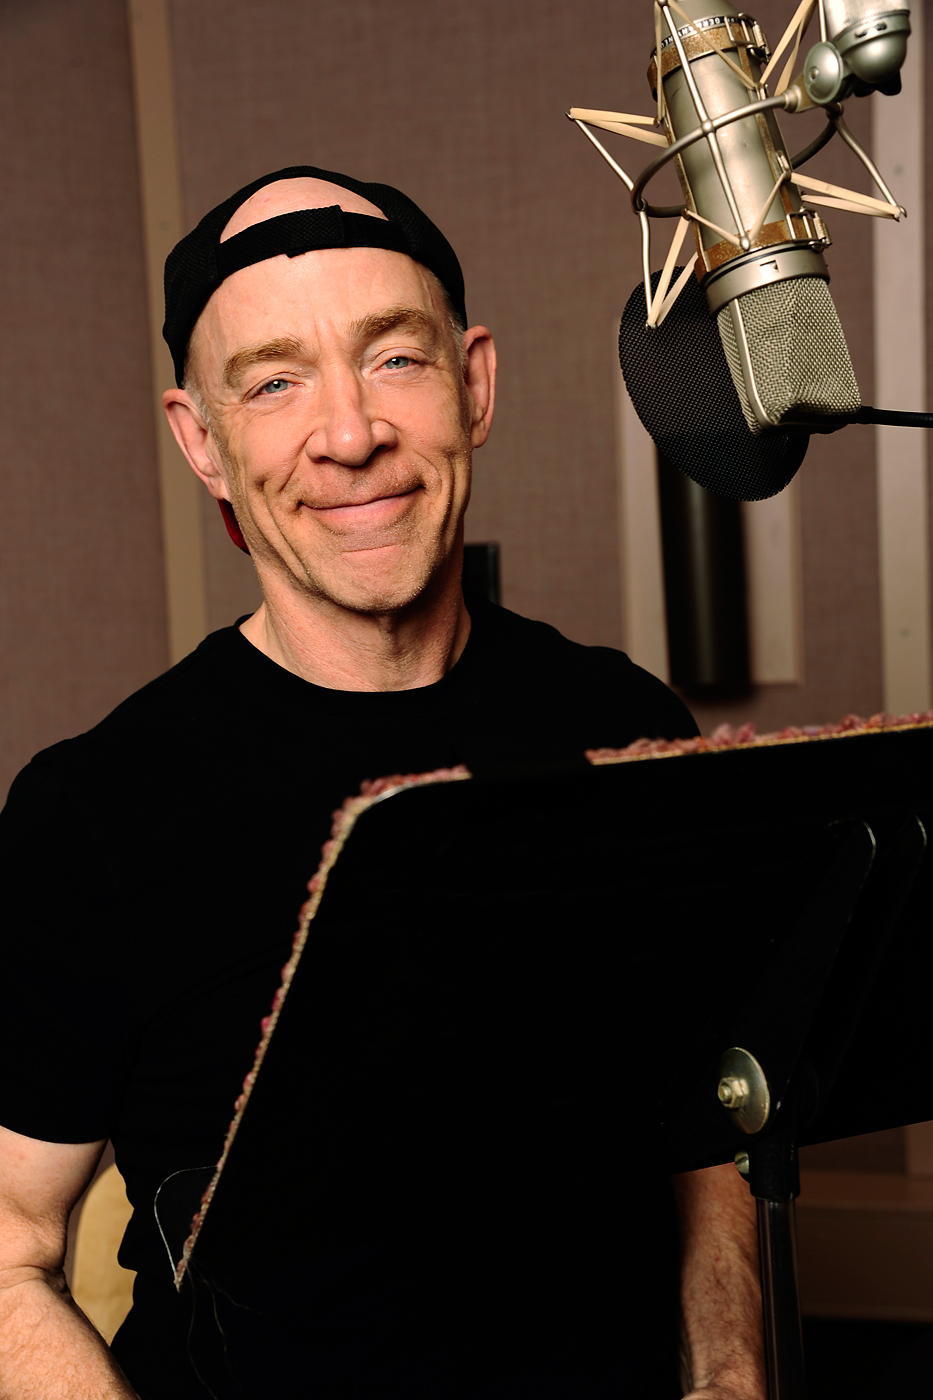 J.K. Simmons during a recording session for Gravity Falls.